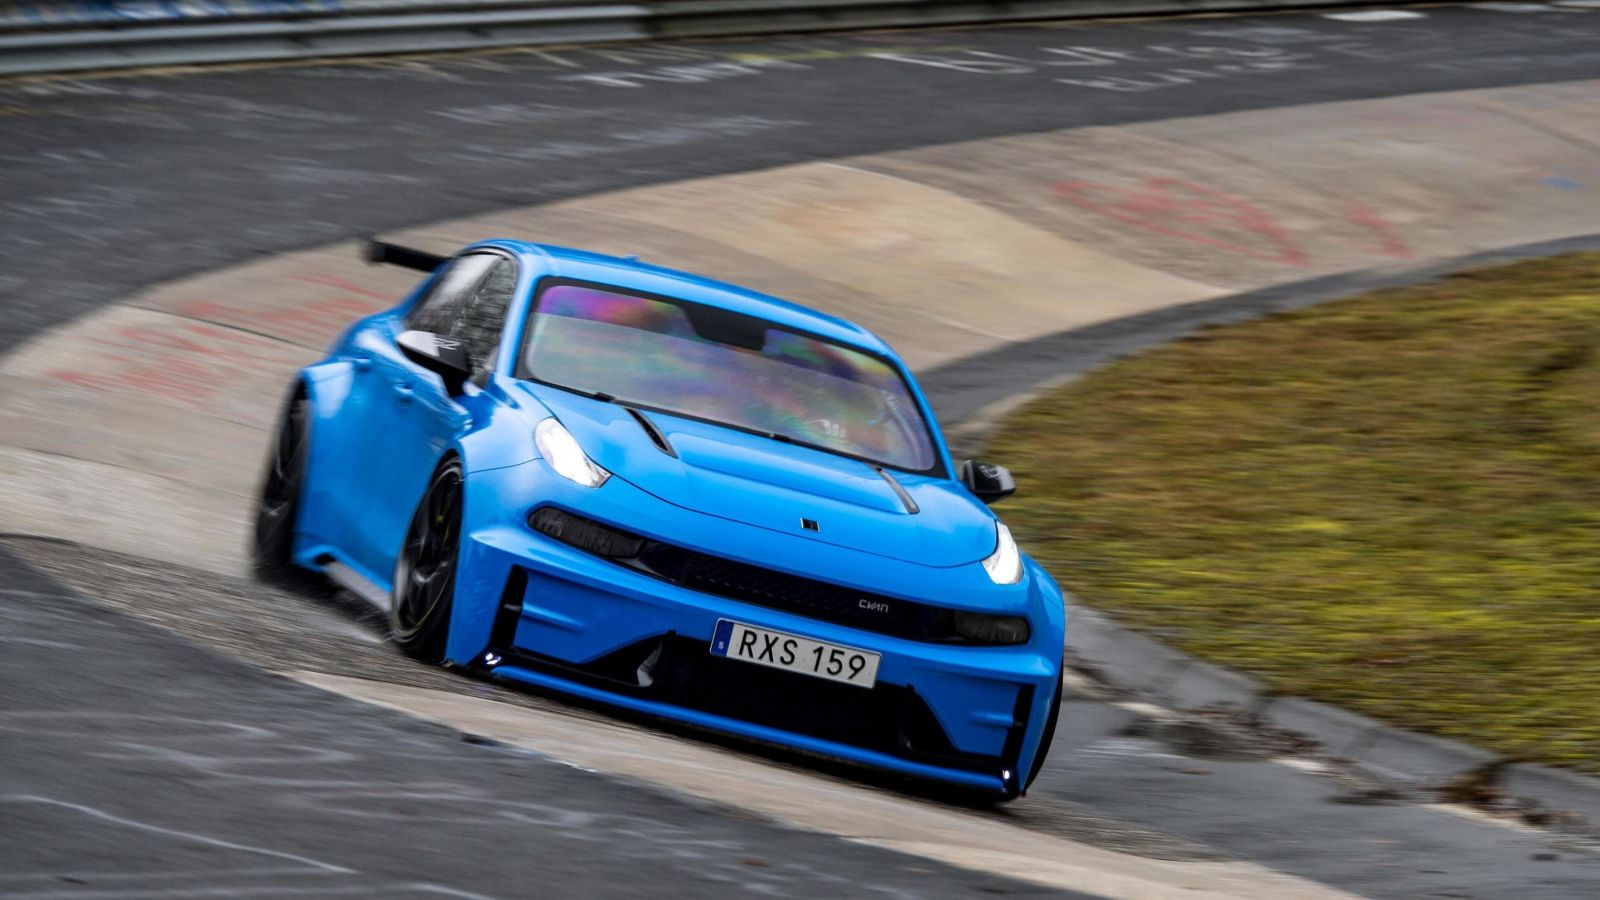 Here's Subscription Mobility Company Lynk & Co Breaking Nürburgring Records, As They Do